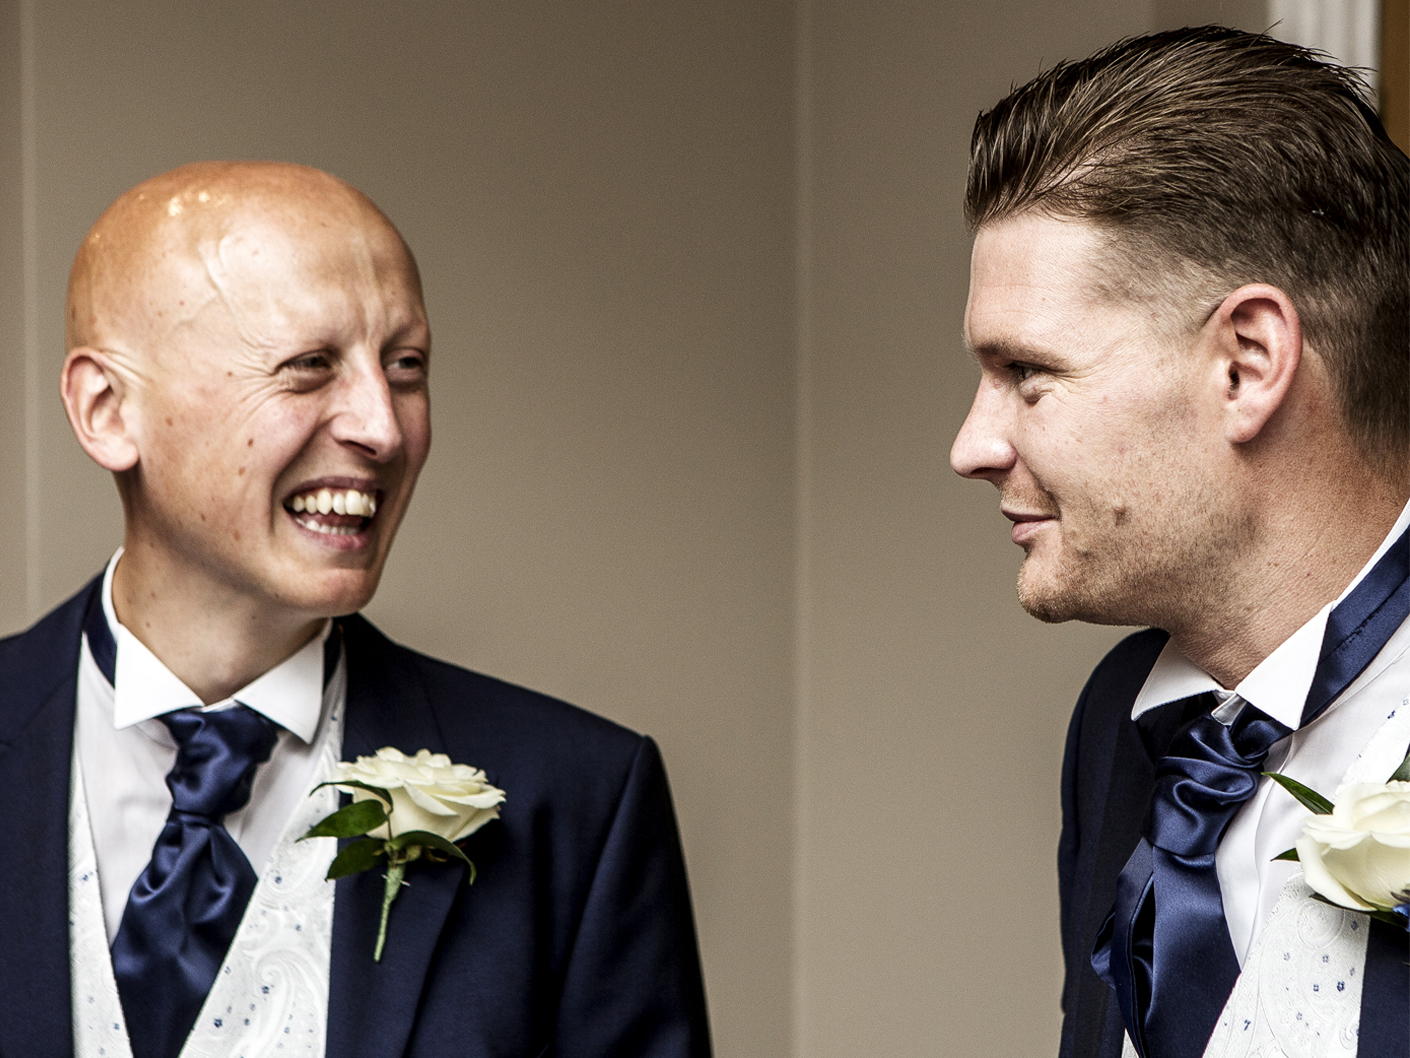 wedding-photography-of-the-groom-and-best-man-at-cranage-hall-cheshire